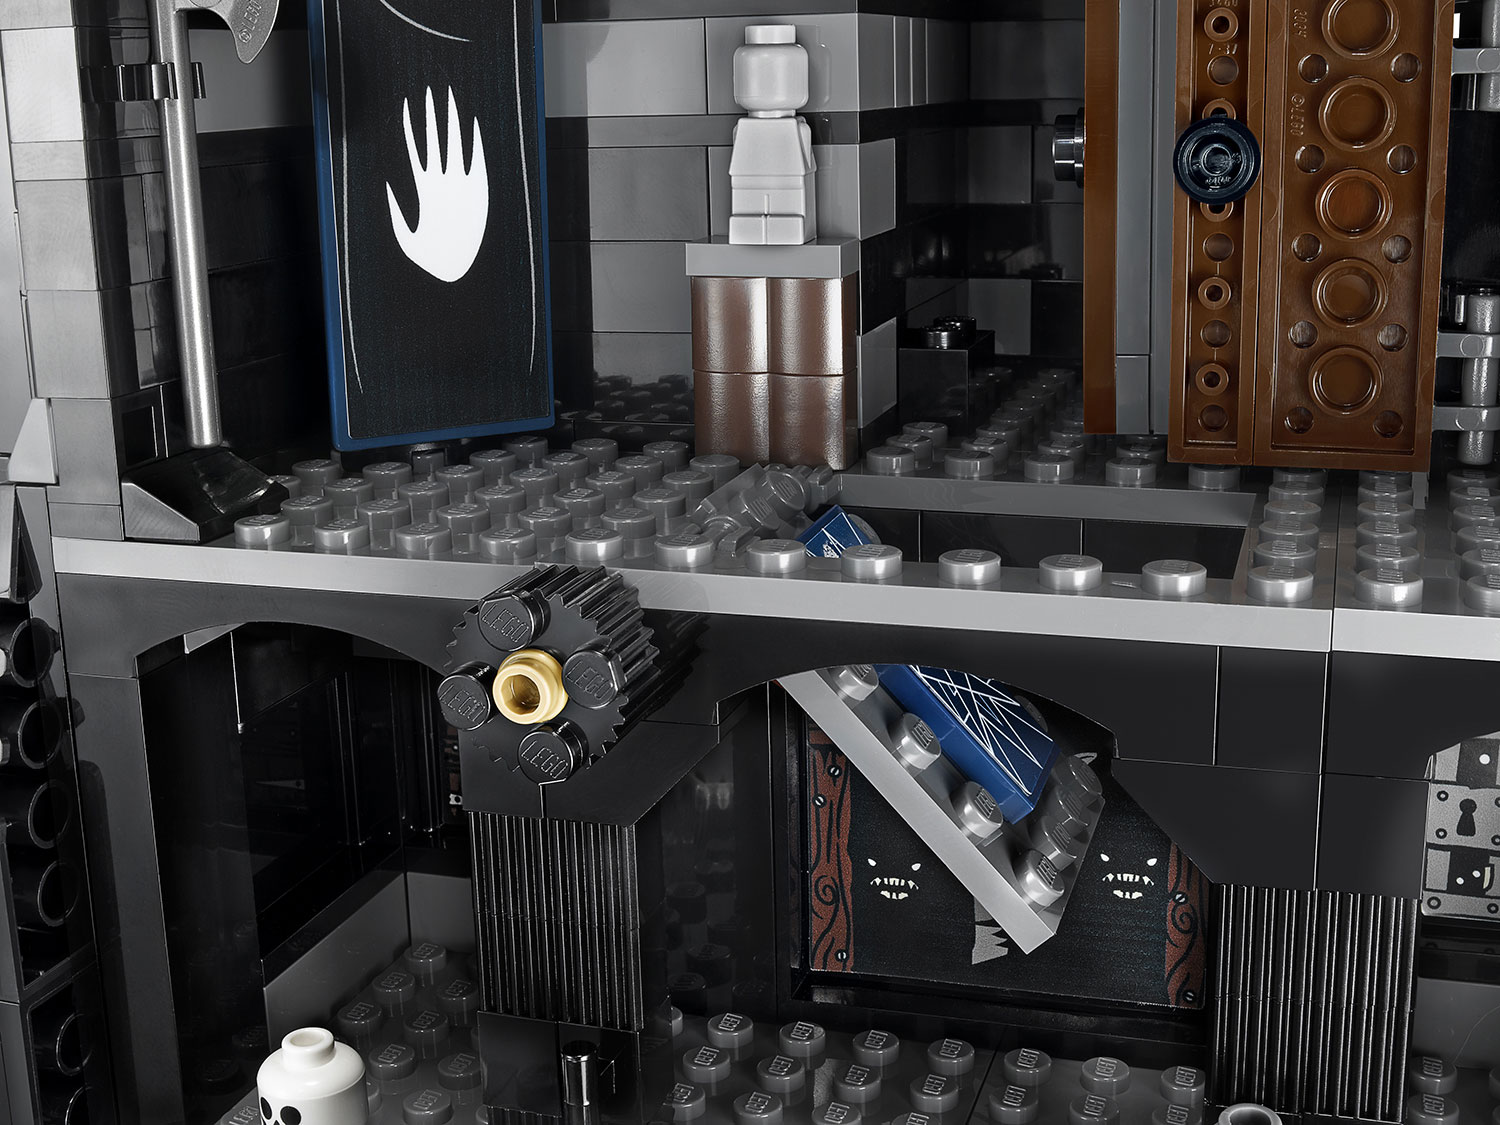 LEGO-Tower-Of-Orthanc-10237-trapdoor